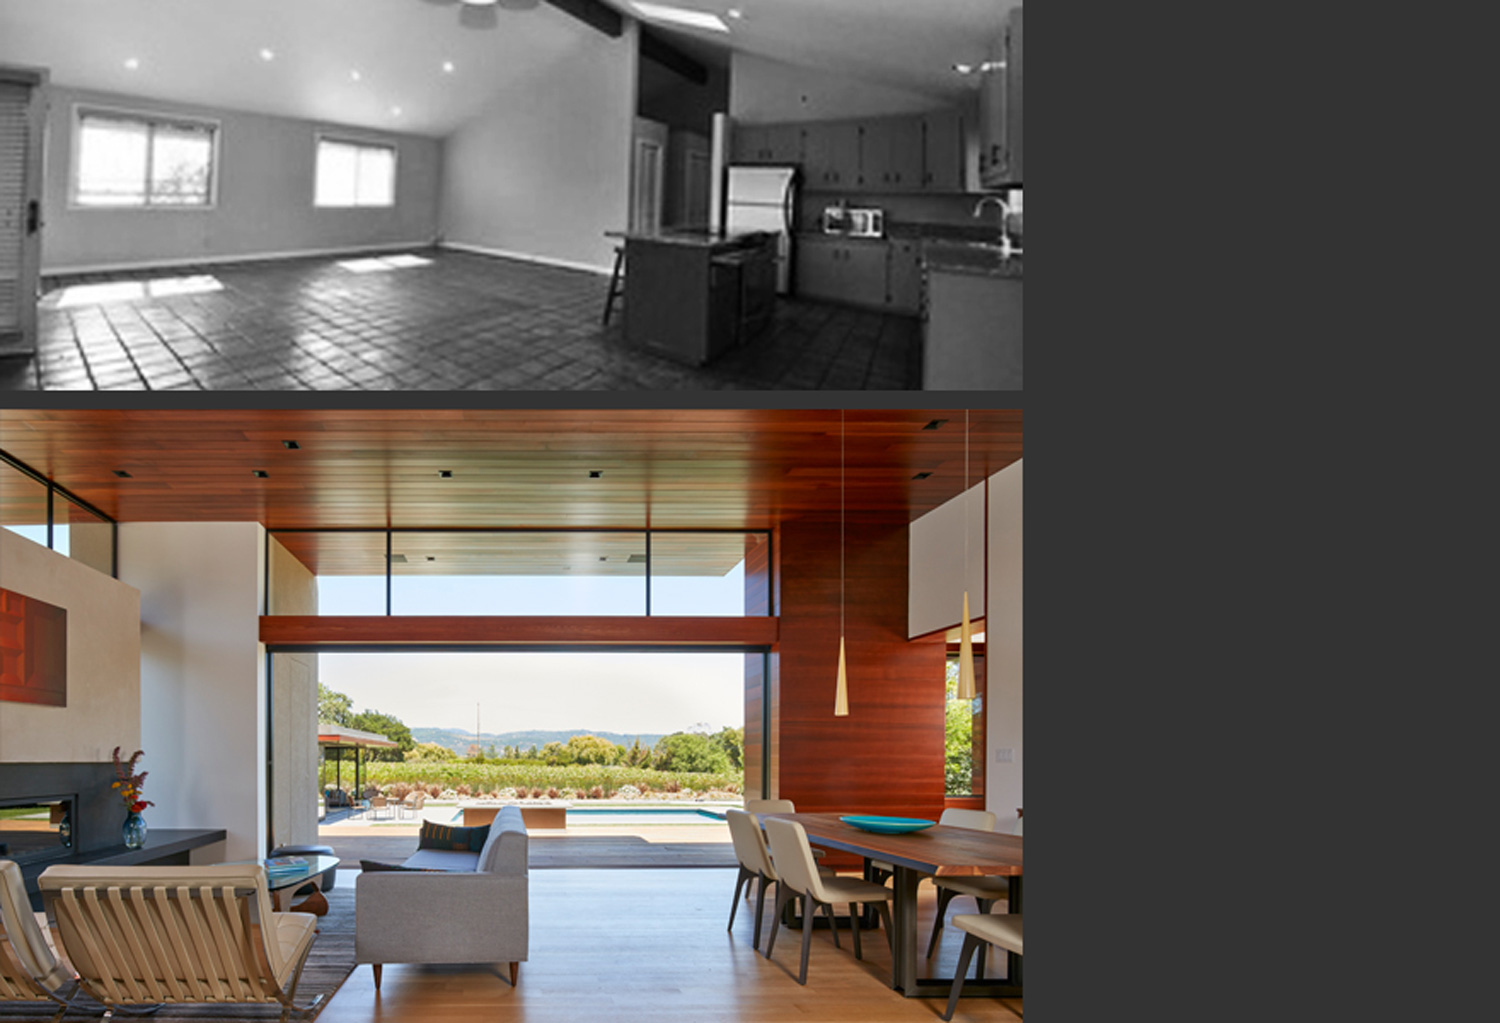 miers_hse-13_before-after.jpg